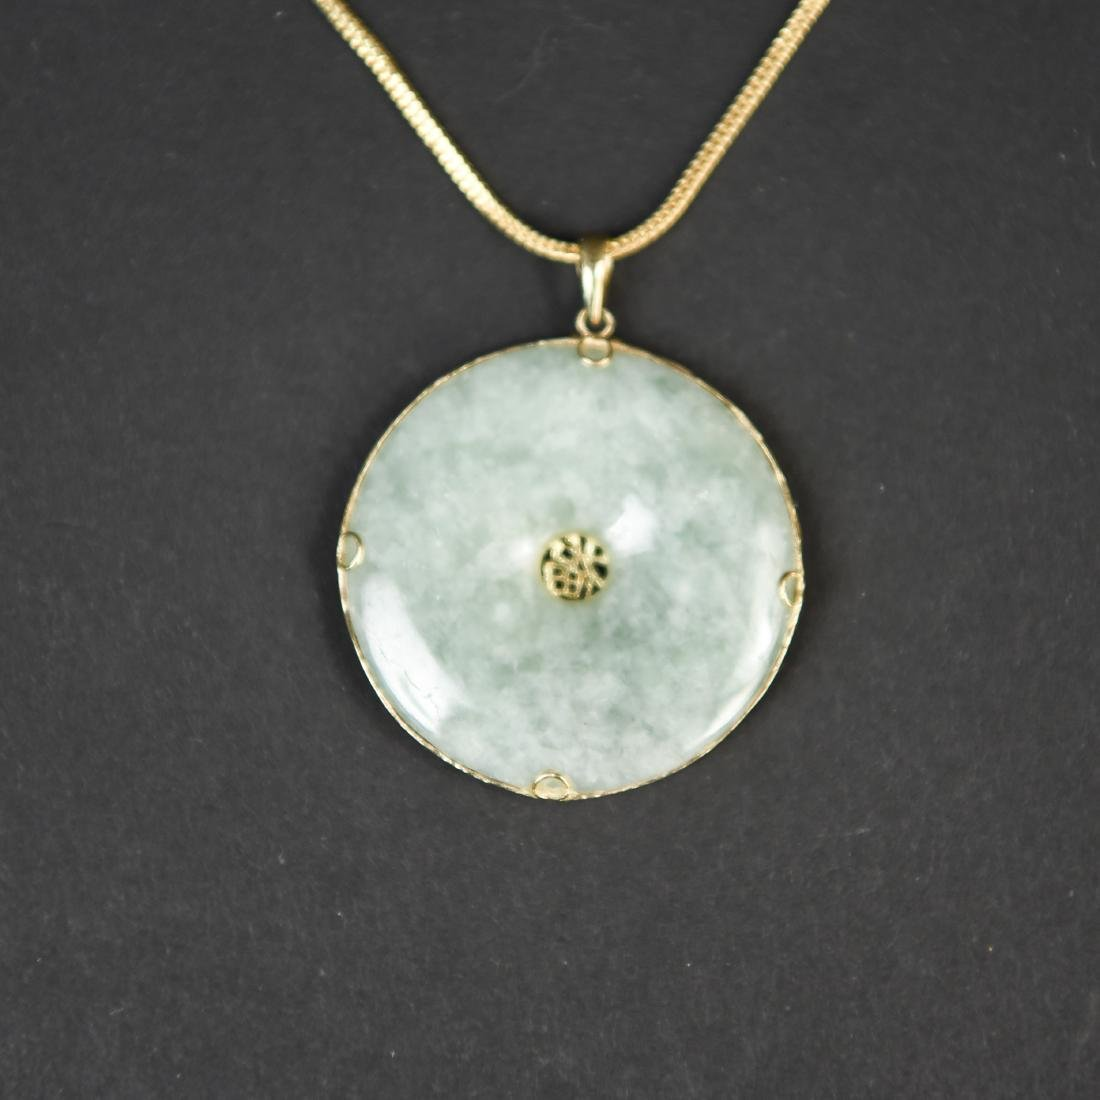 CHINESE JADE AND GOLD BI-DISC NECKLACE - 2